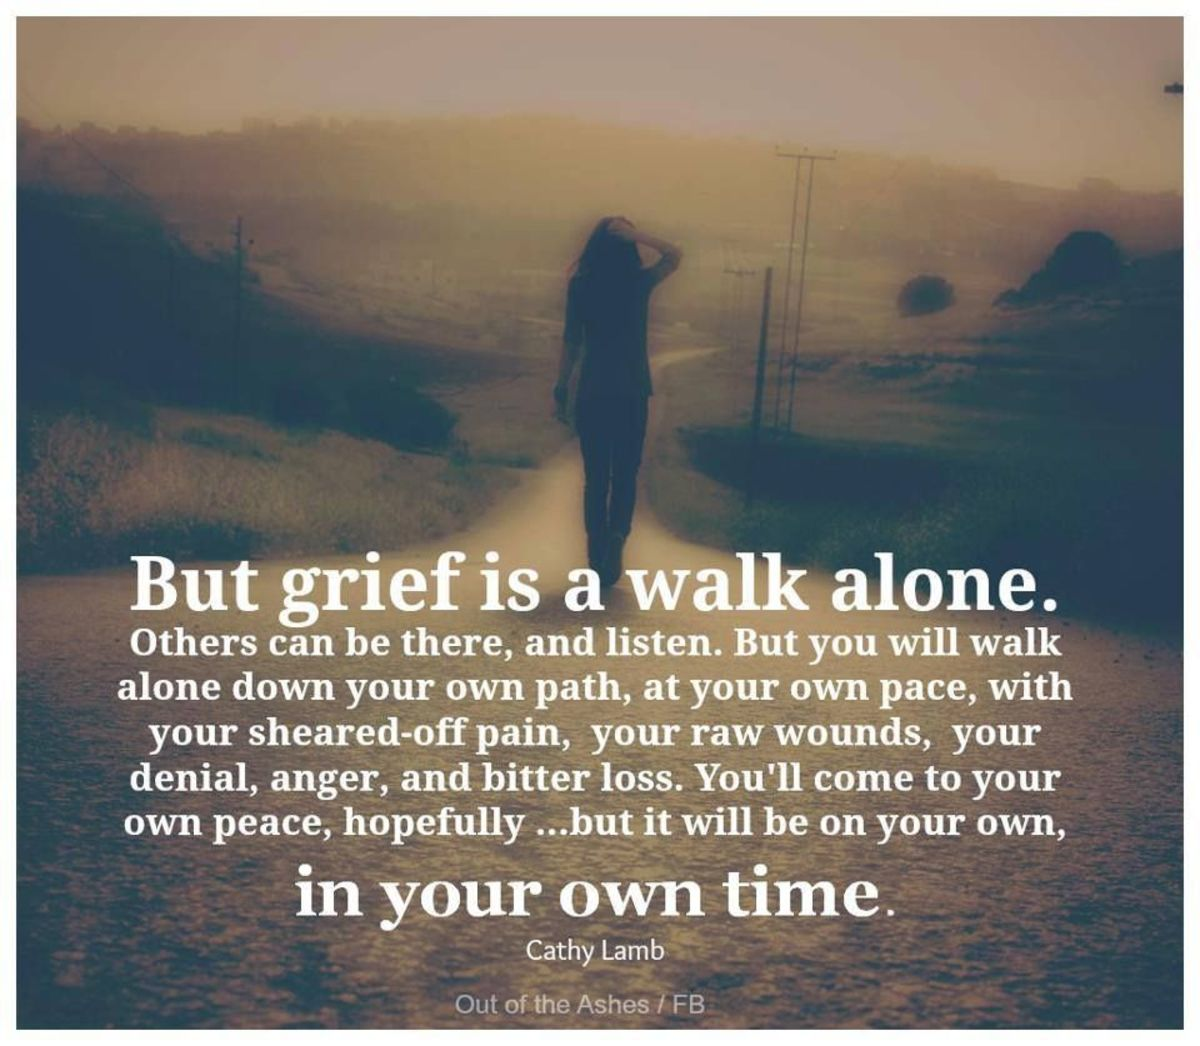 No Guide to Grief, Lovingly Dedicated to All Who Have Lost Loved Ones